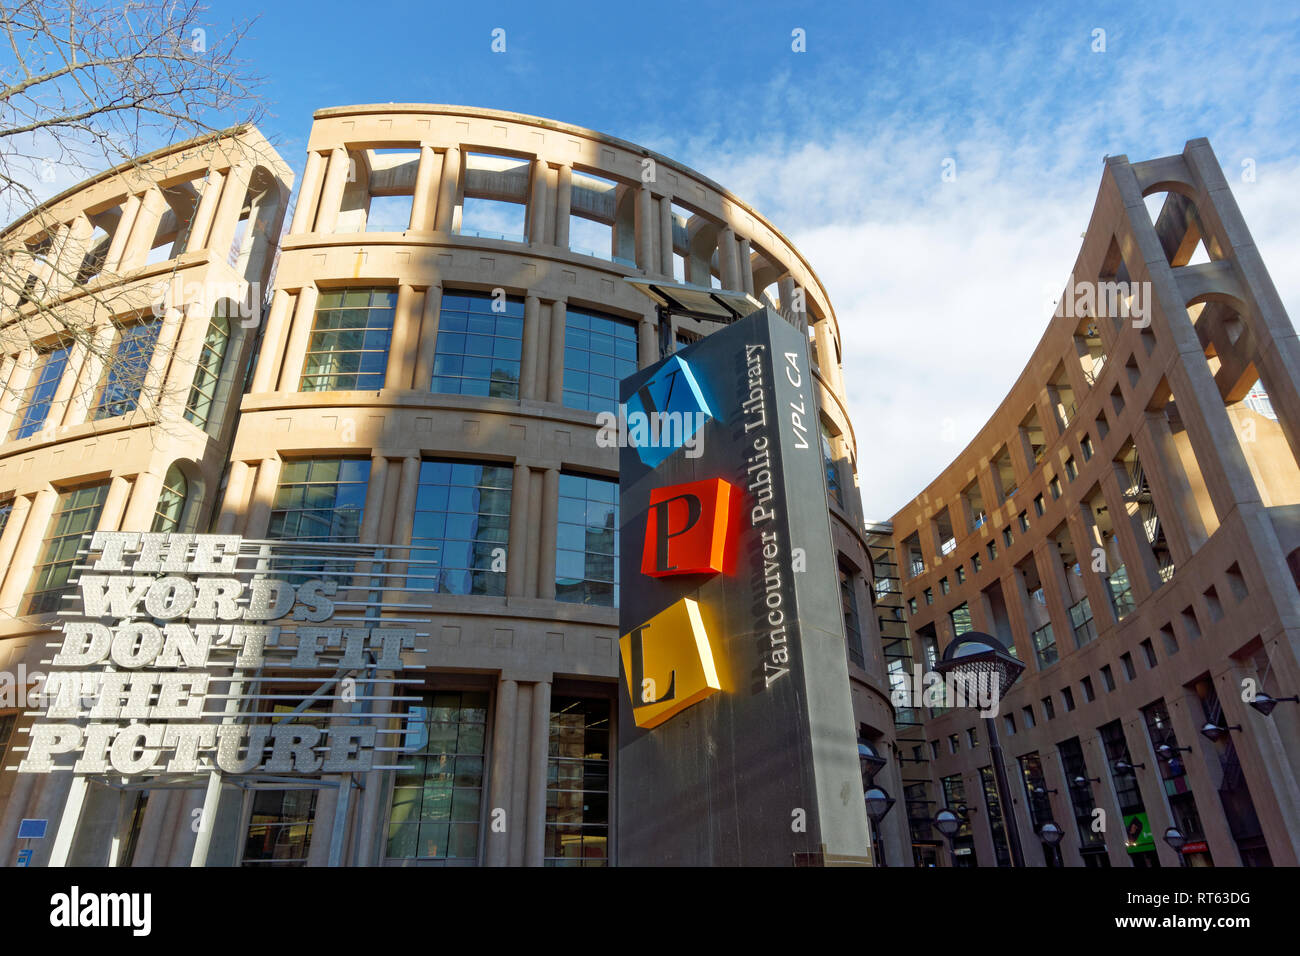 Exterior of Vancouver Public Library VPL central branch building designed by Moshe Safdie, downtown Vancouver, BC, Canada - Stock Image